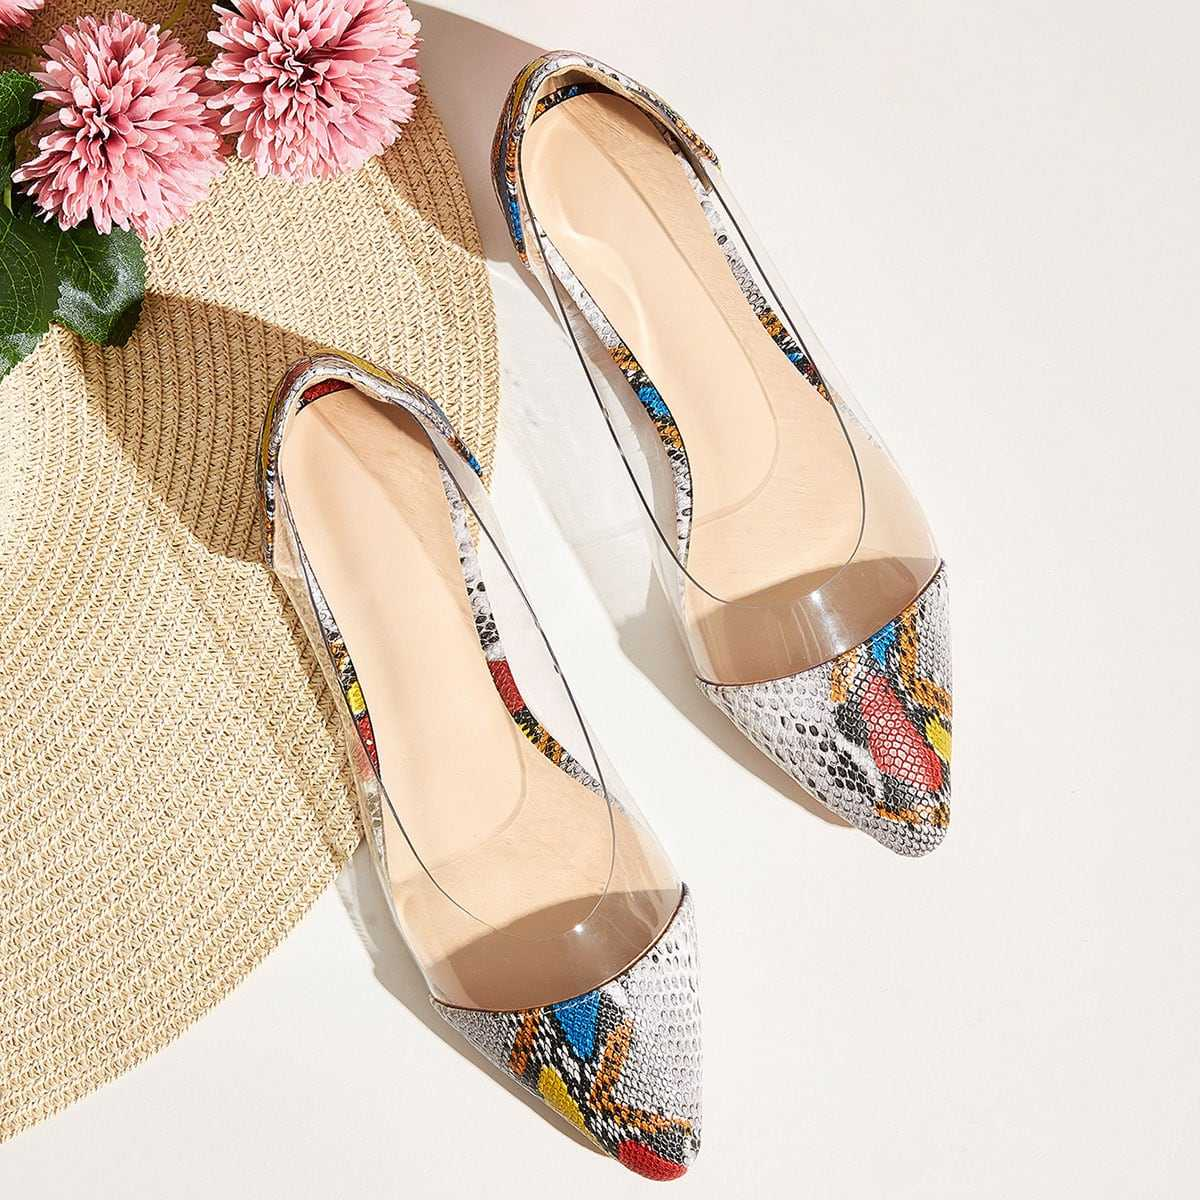 Point Toe Snakeskin Panel Flats in Multicolor by ROMWE on GOOFASH